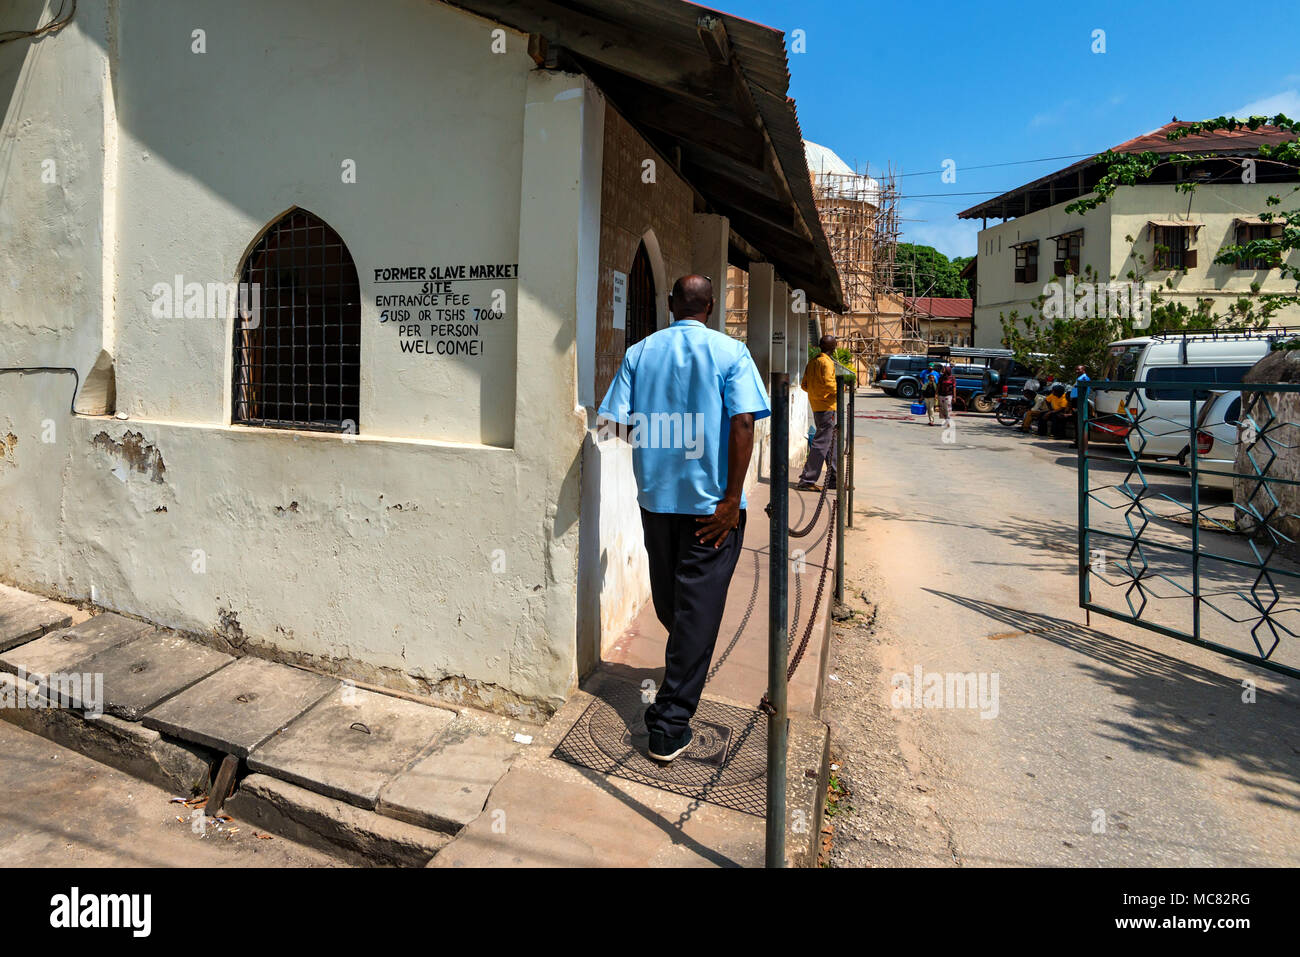 STONE TOWN, ZANZIBAR - JANUARY 9, 2015: Street of Stone Town on sunny day. Stone Town is the oldest part of Zanzibar City which was a UNESCO World Her - Stock Image